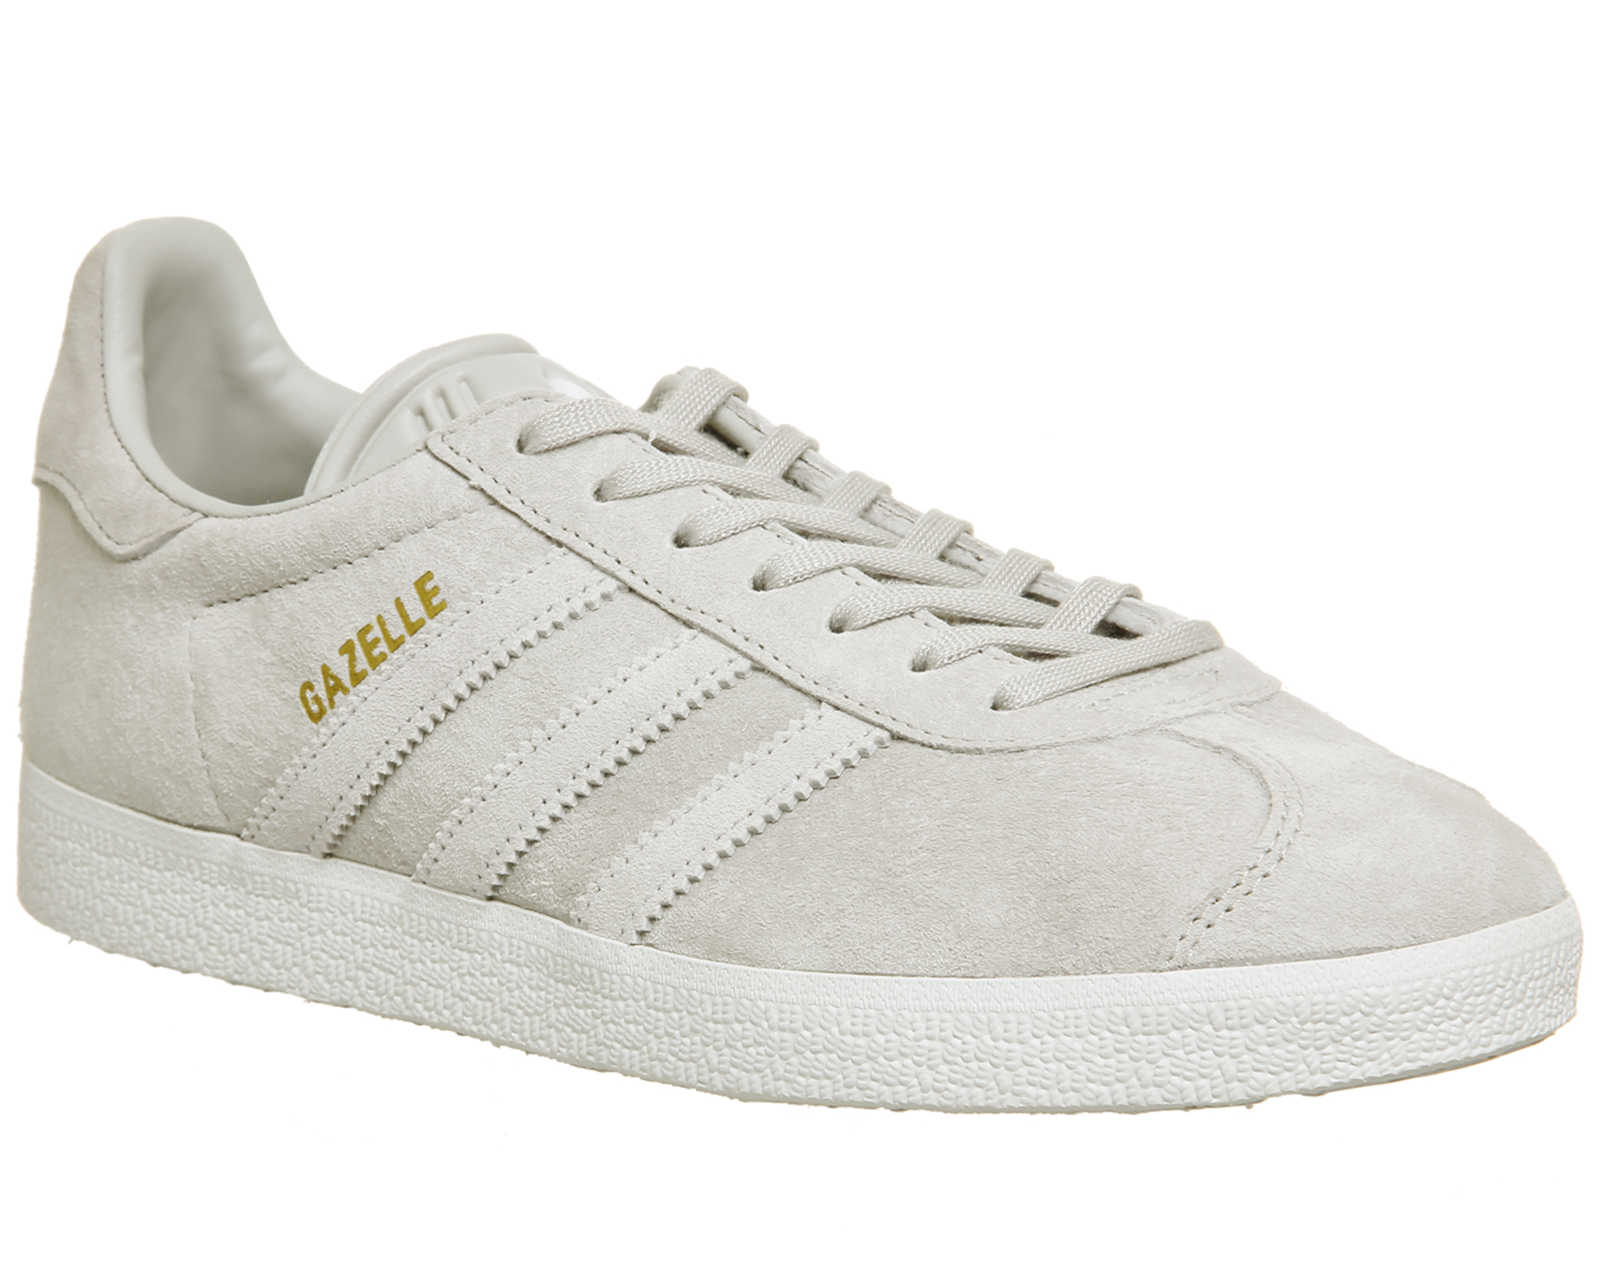 65fde2b0977c0e Sentinel Womens Adidas Gazelle Trainers Grey One White Grey Two F Trainers  Shoes